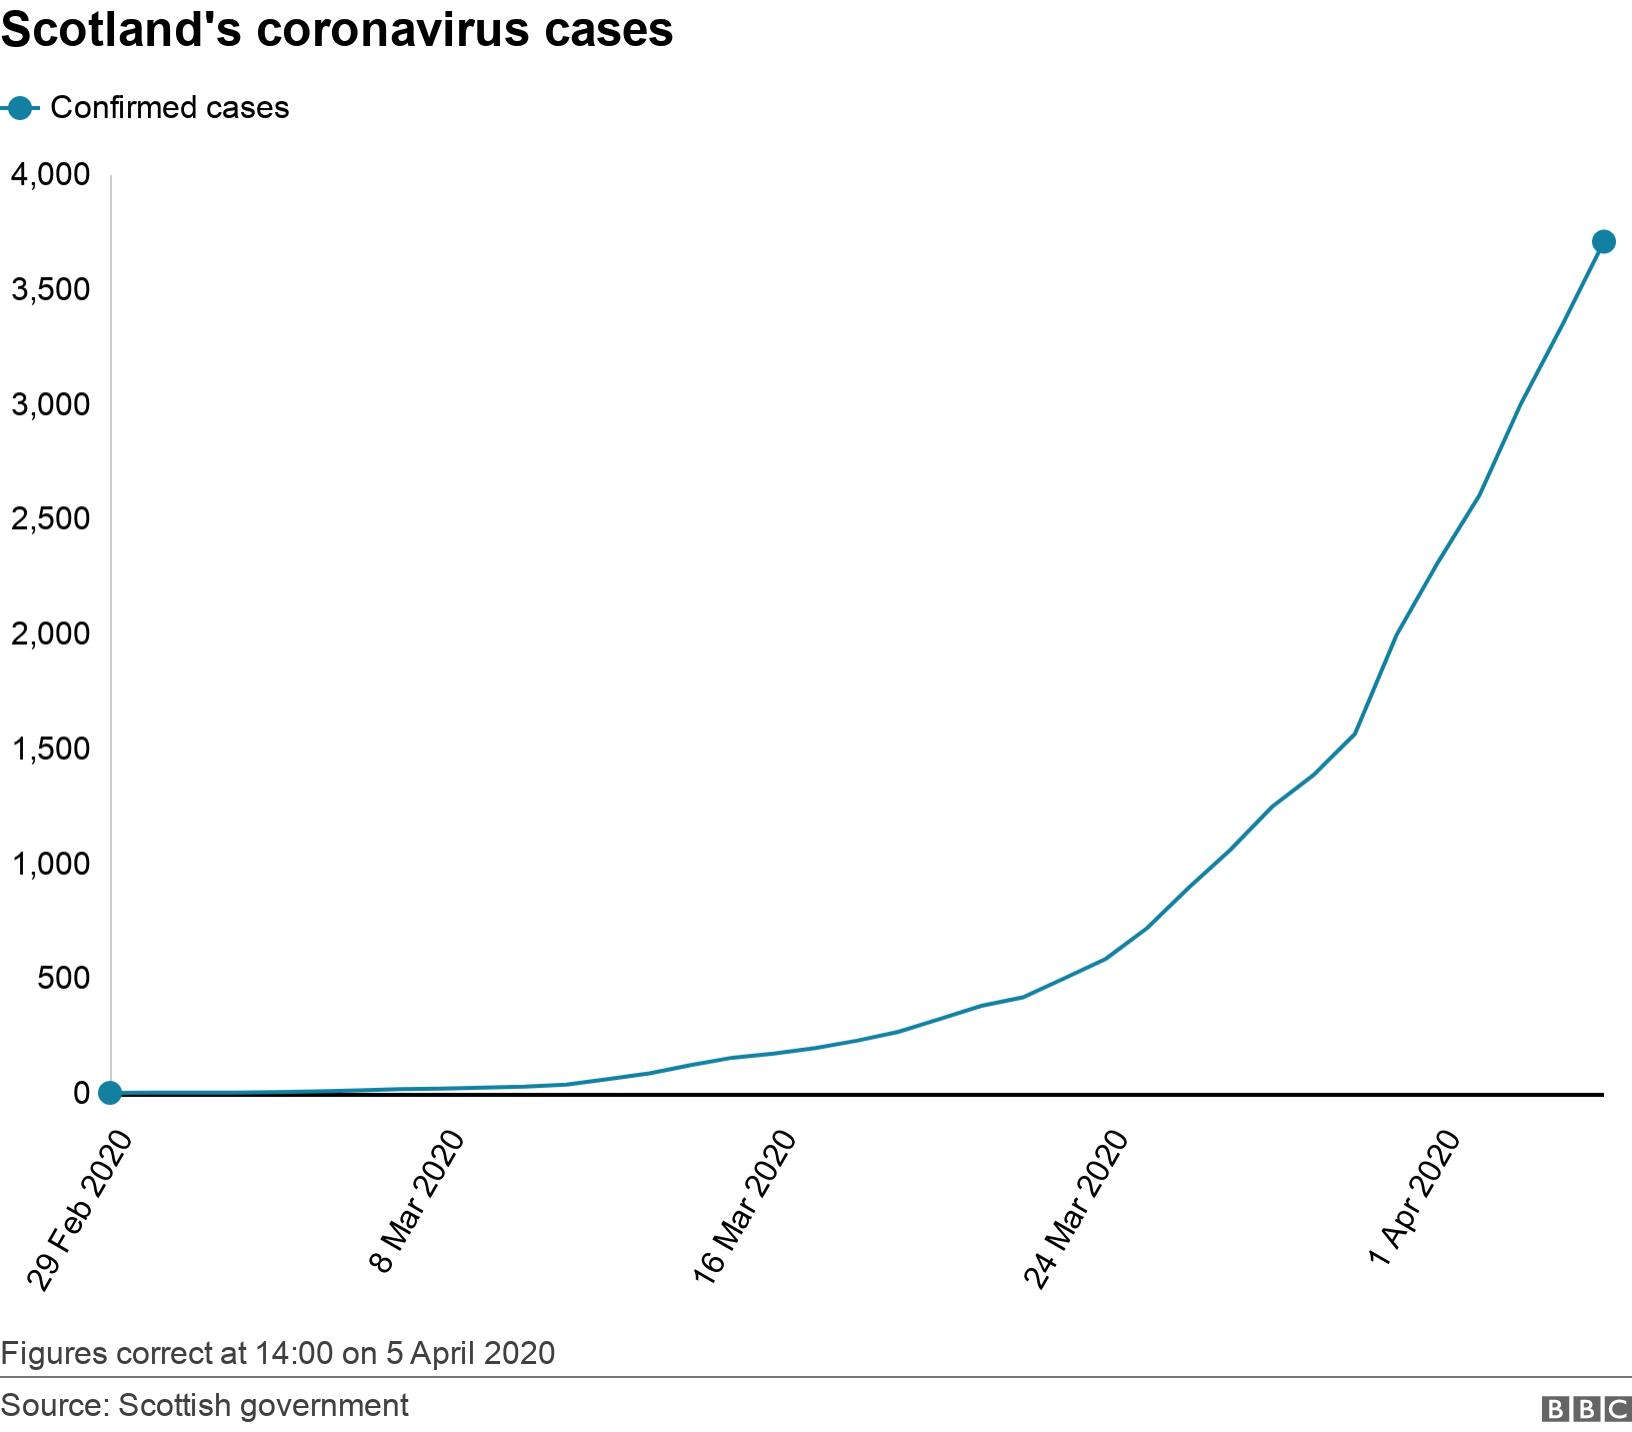 Scotland's coronavirus cases. .  Figures correct at 14:00 on 5 April 2020.